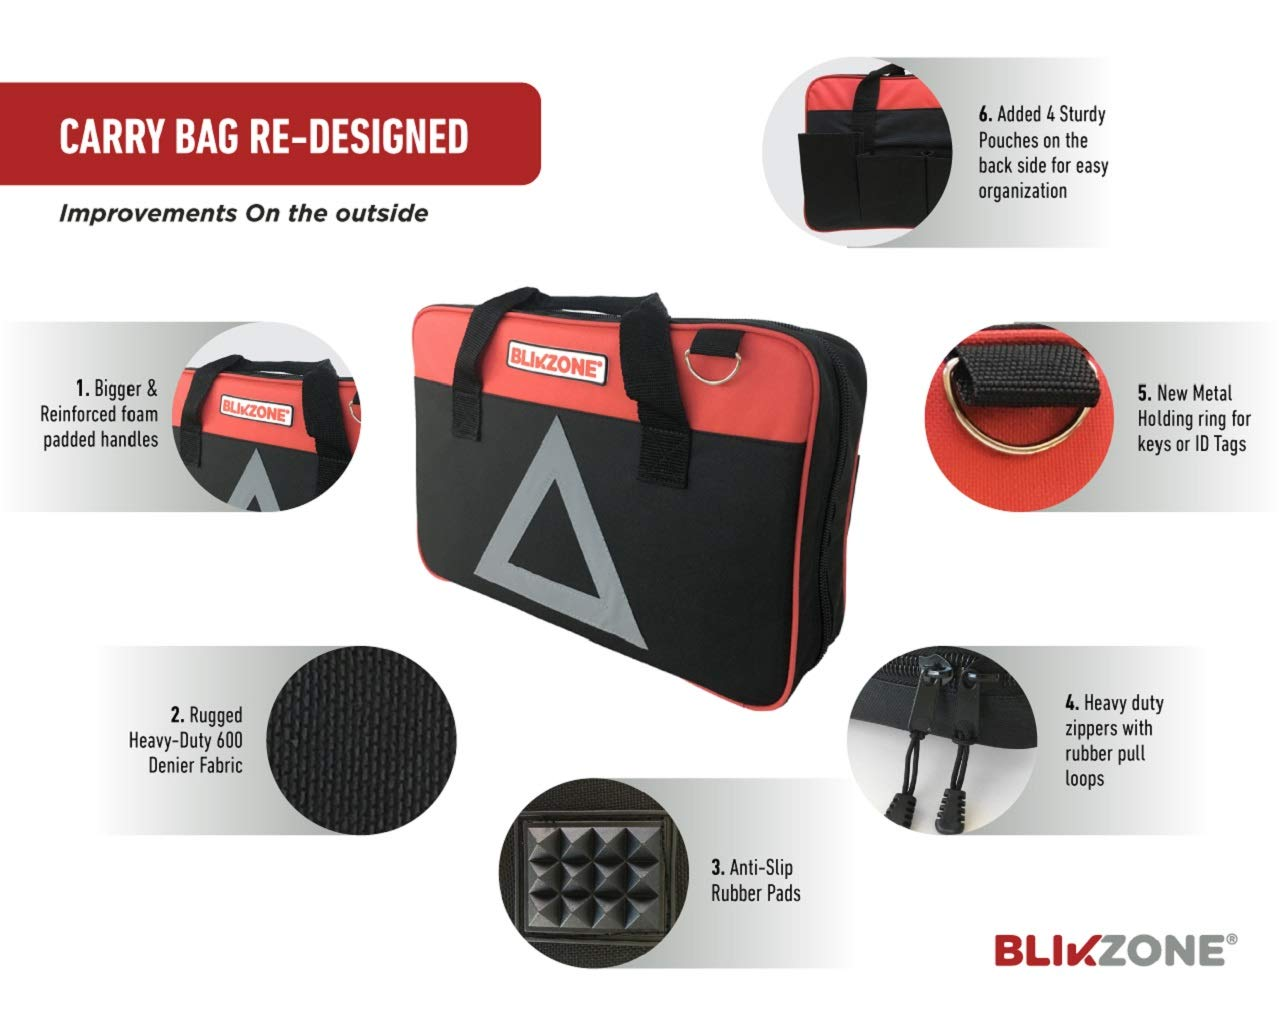 Emergency Triangle Tow Strap BLIKZONE 82- Pc Auto Roadside Assistance Emergency Essentials Digital Car Kit Truck /& RV with Tire Repair Kit Jumper Cables Portable Air Compressor